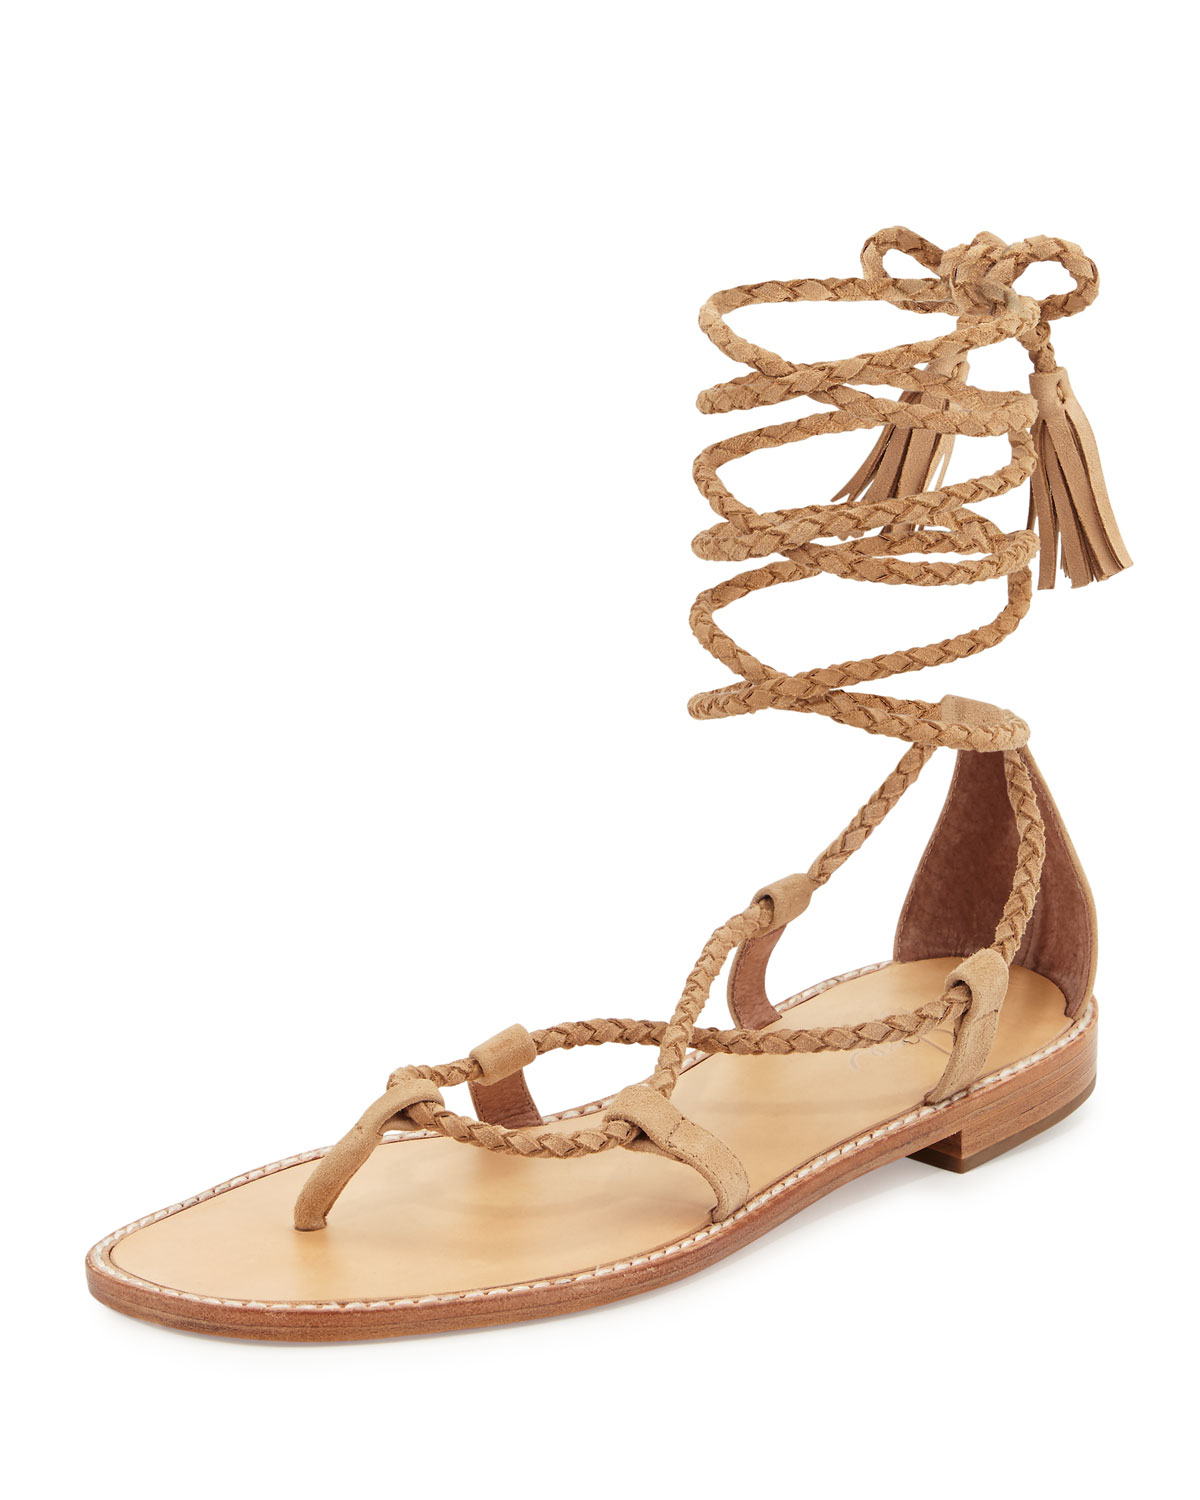 Joie Bailee Lace Up Flat Gladiator Sandal In Natural Lyst